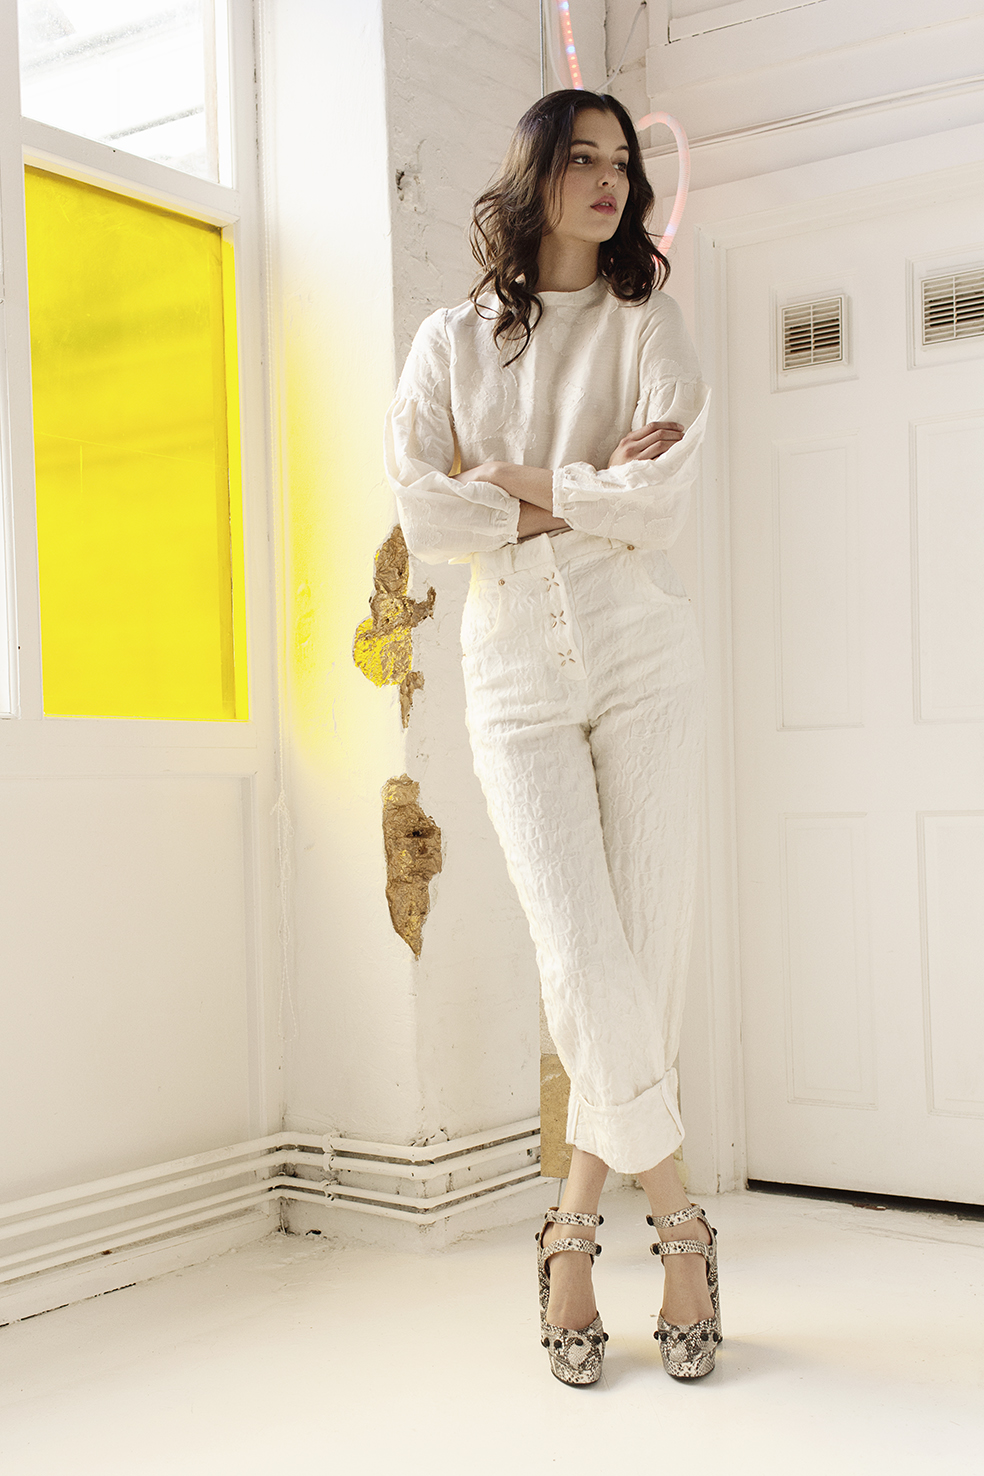 Blouse by Kelly Love @Young British Designers Trousers by Steventai Pumps by Rue St